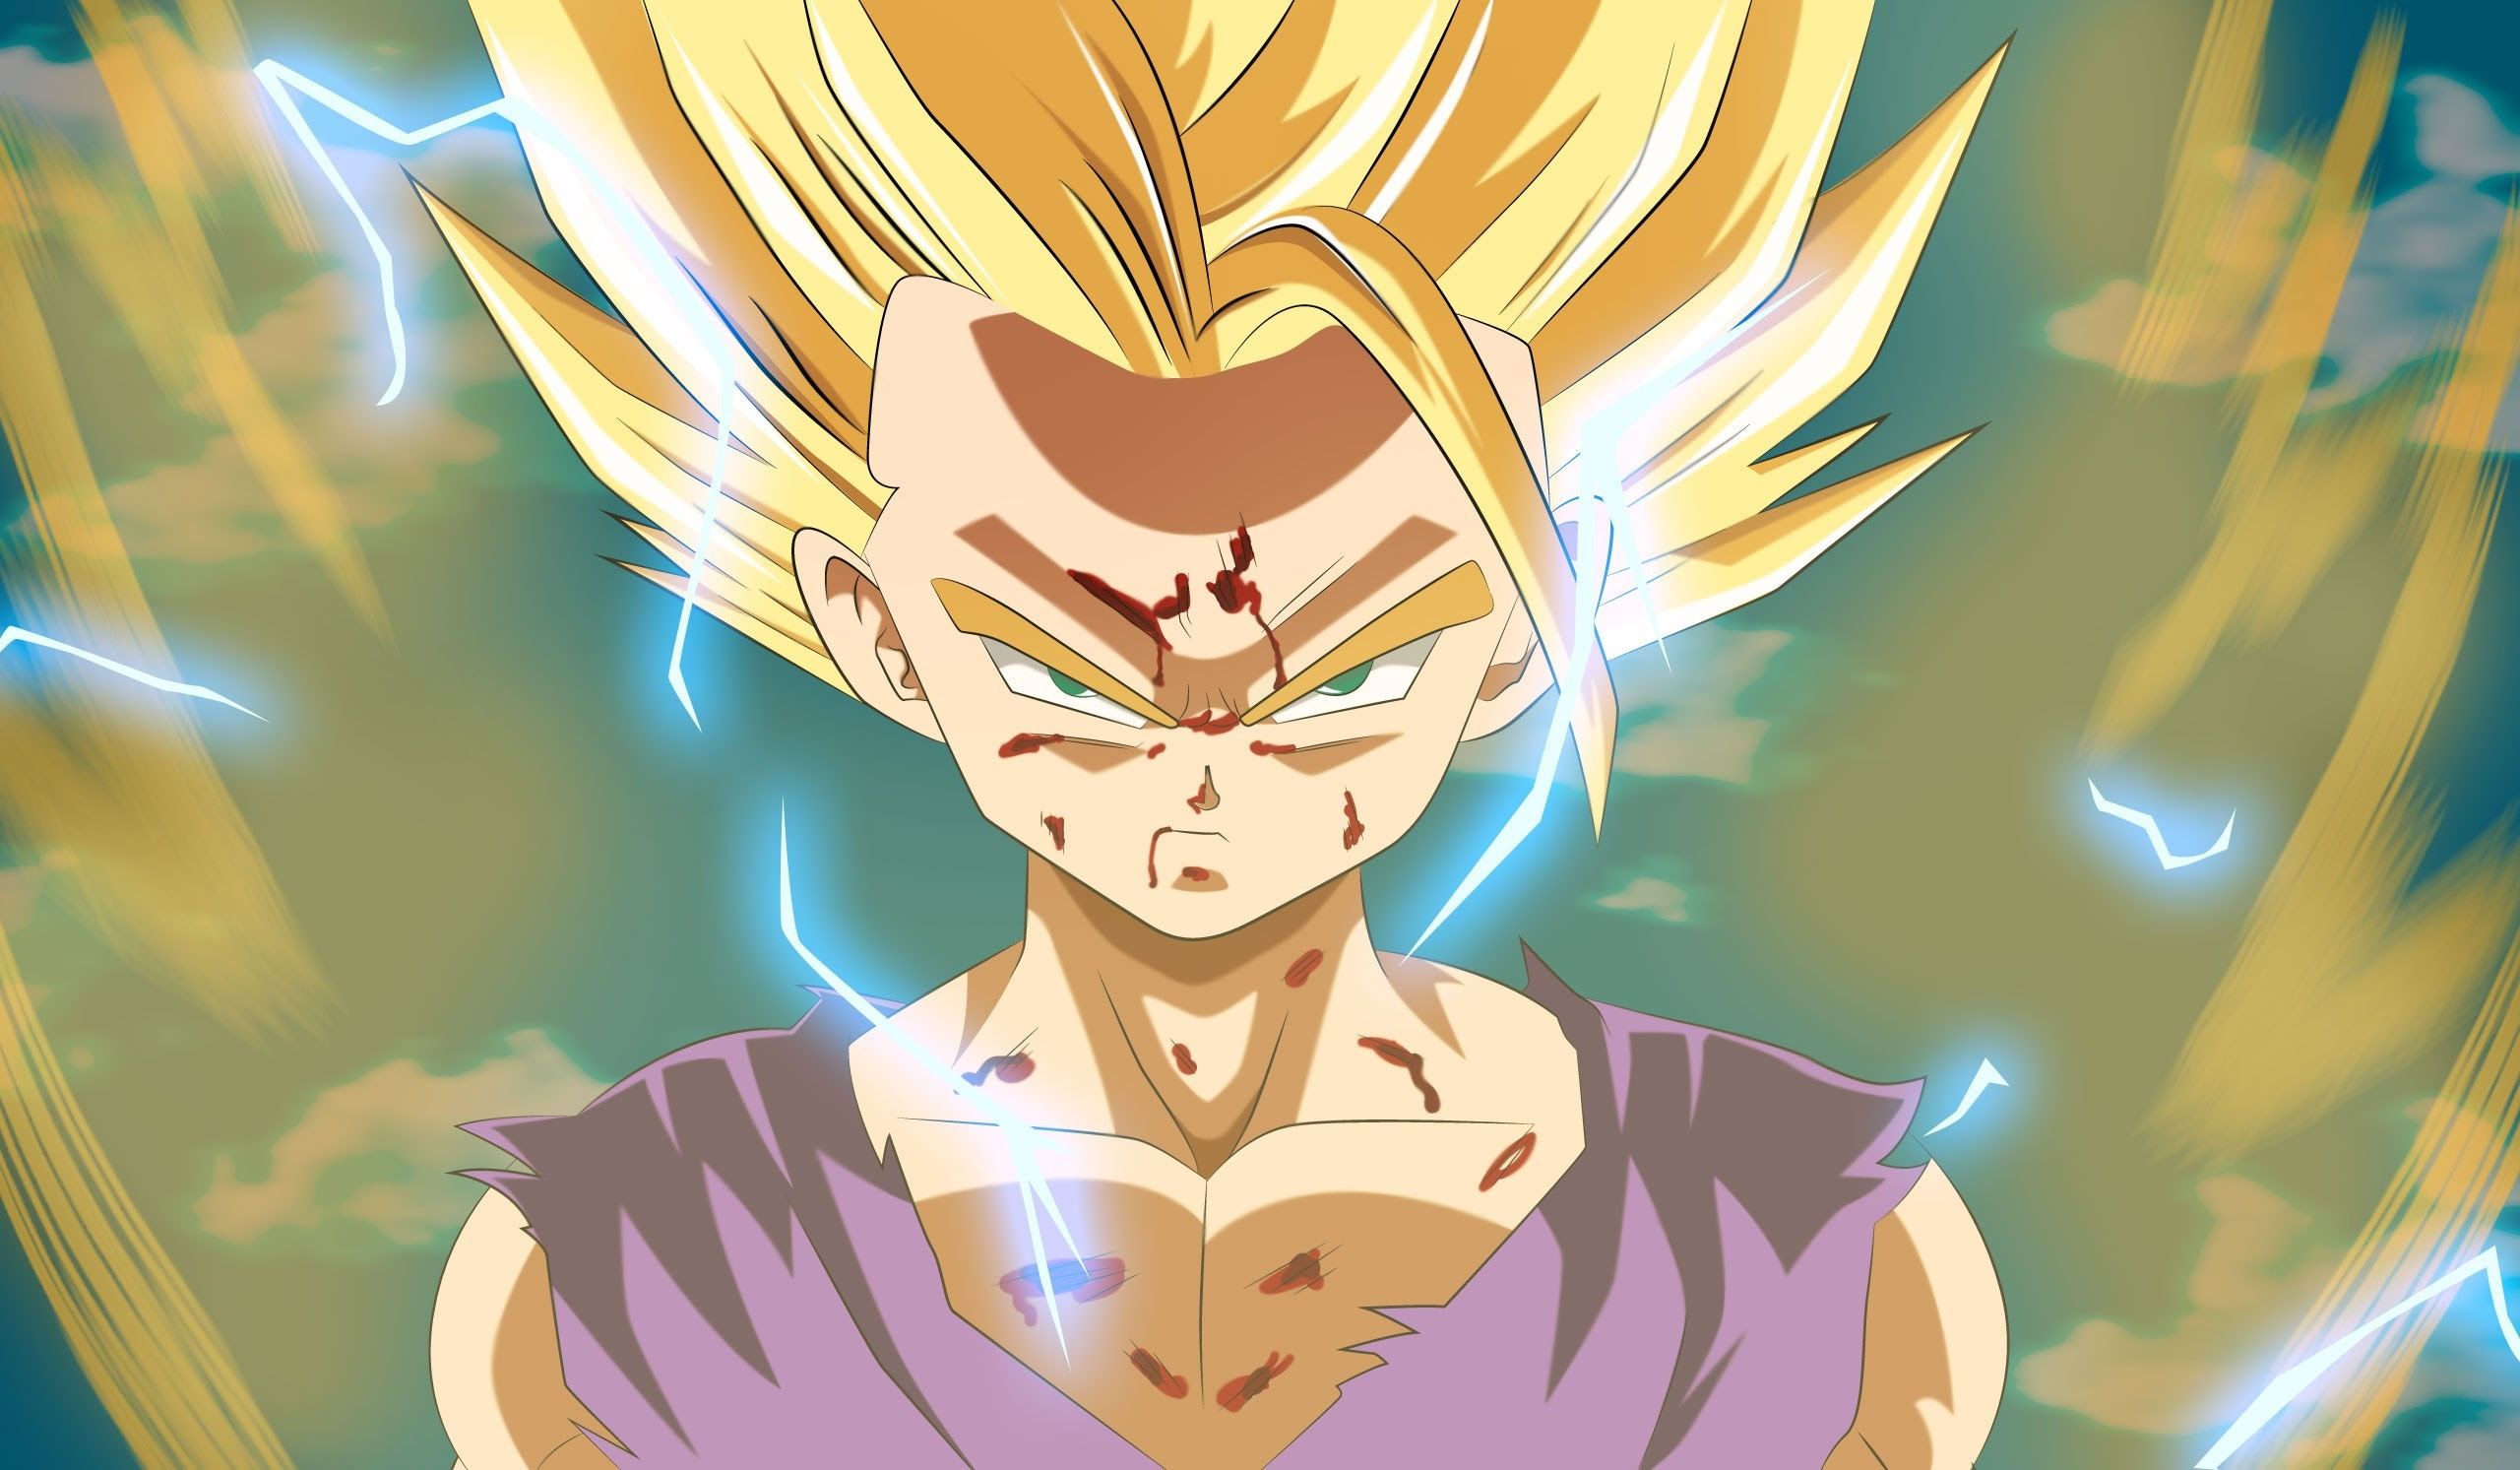 Super Saiyan 2 Gohan Wallpaper 62 Images